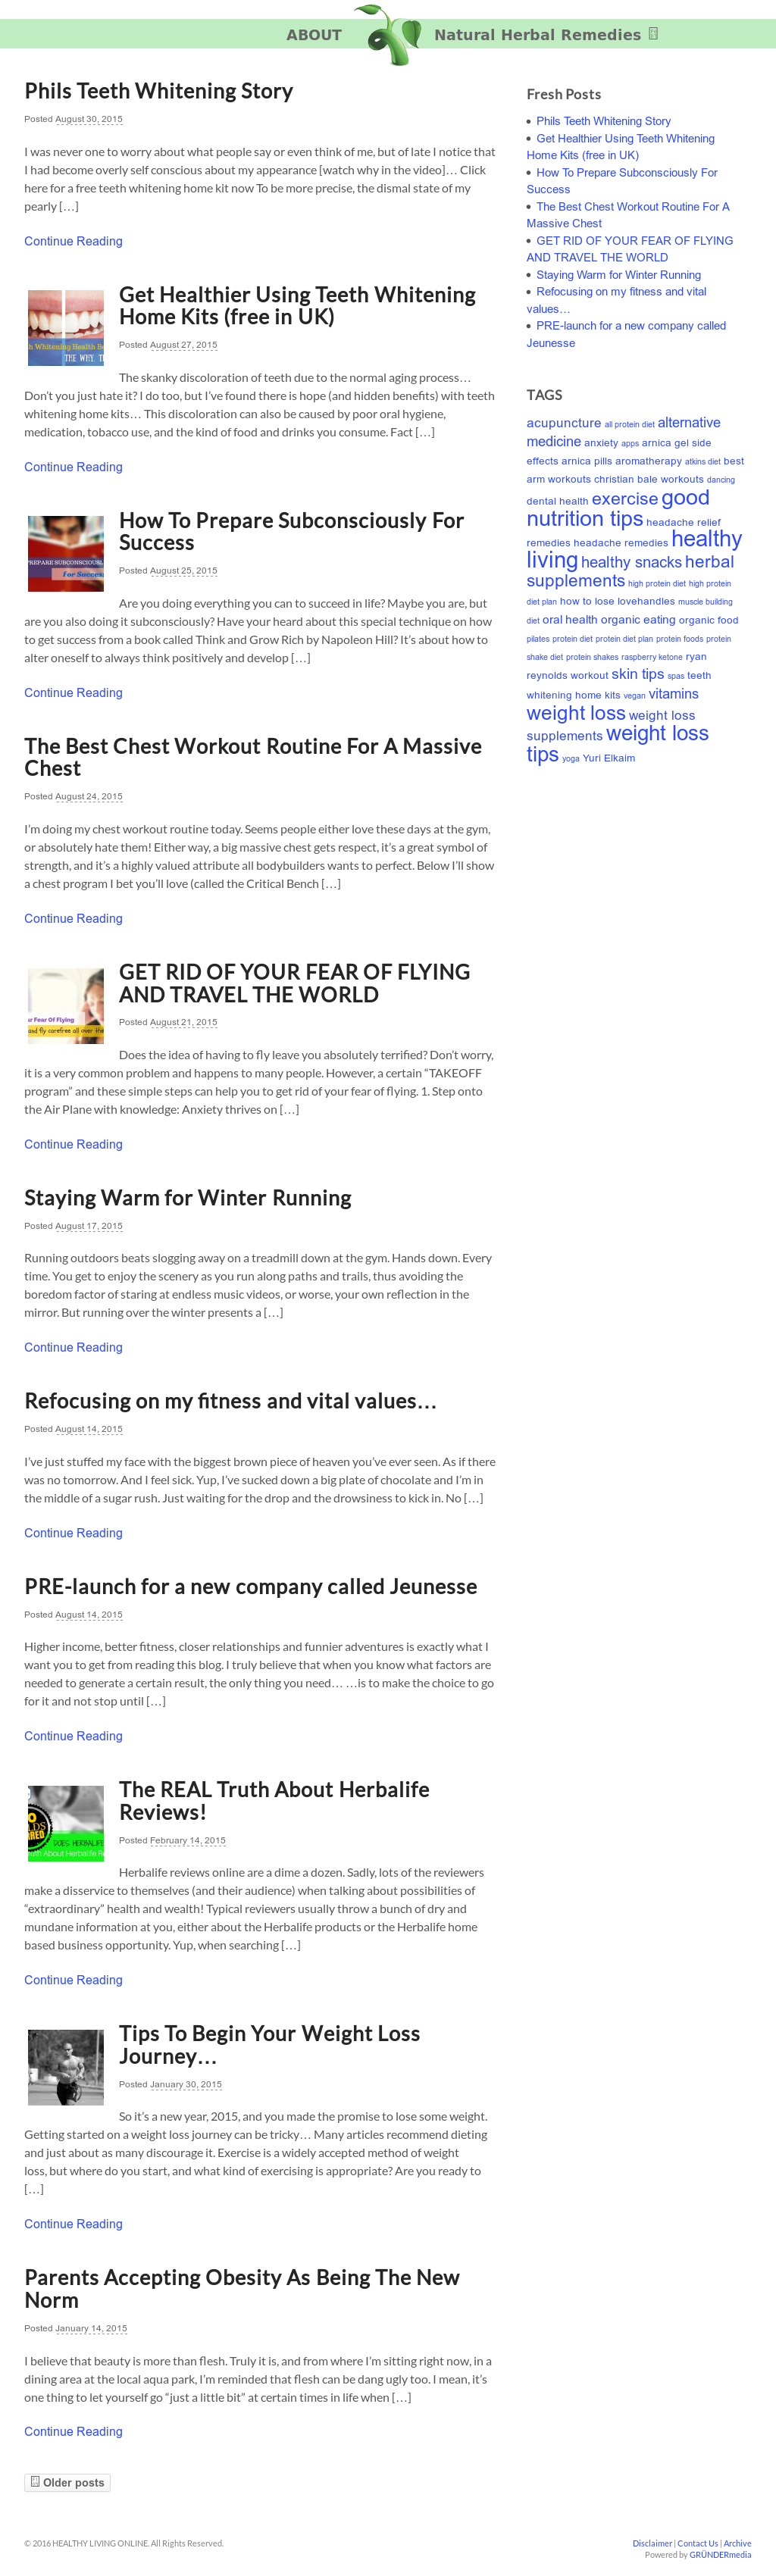 Healthy Living Online Competitors, Revenue and Employees